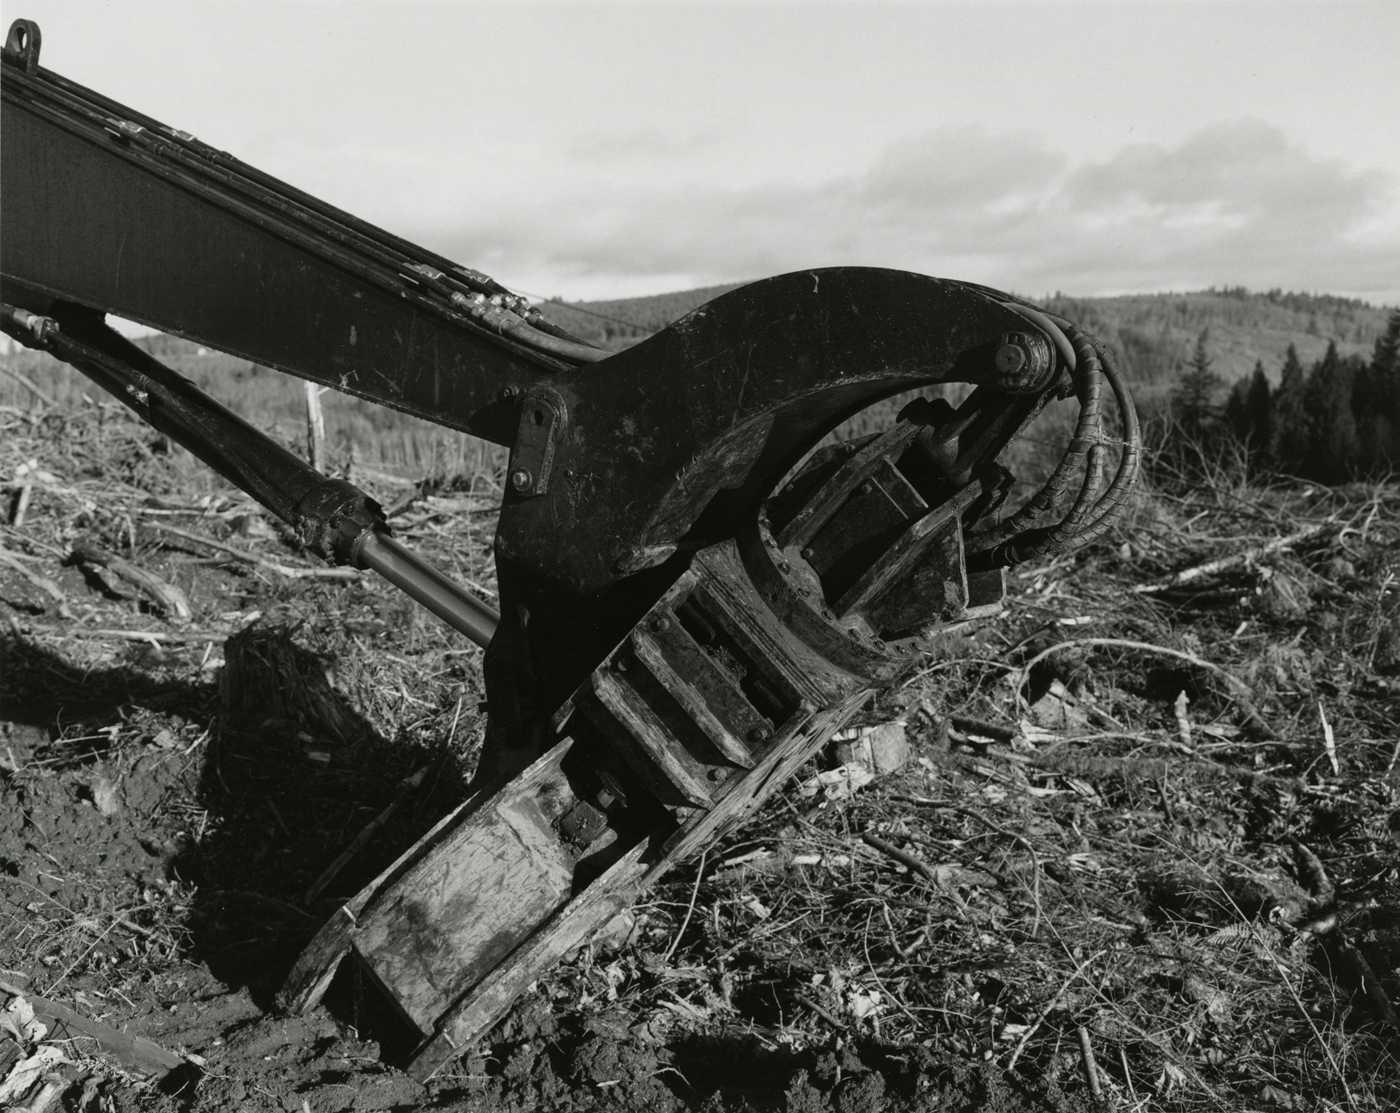 Robert Adams Series: Turning Back 1999, Oregon, USA